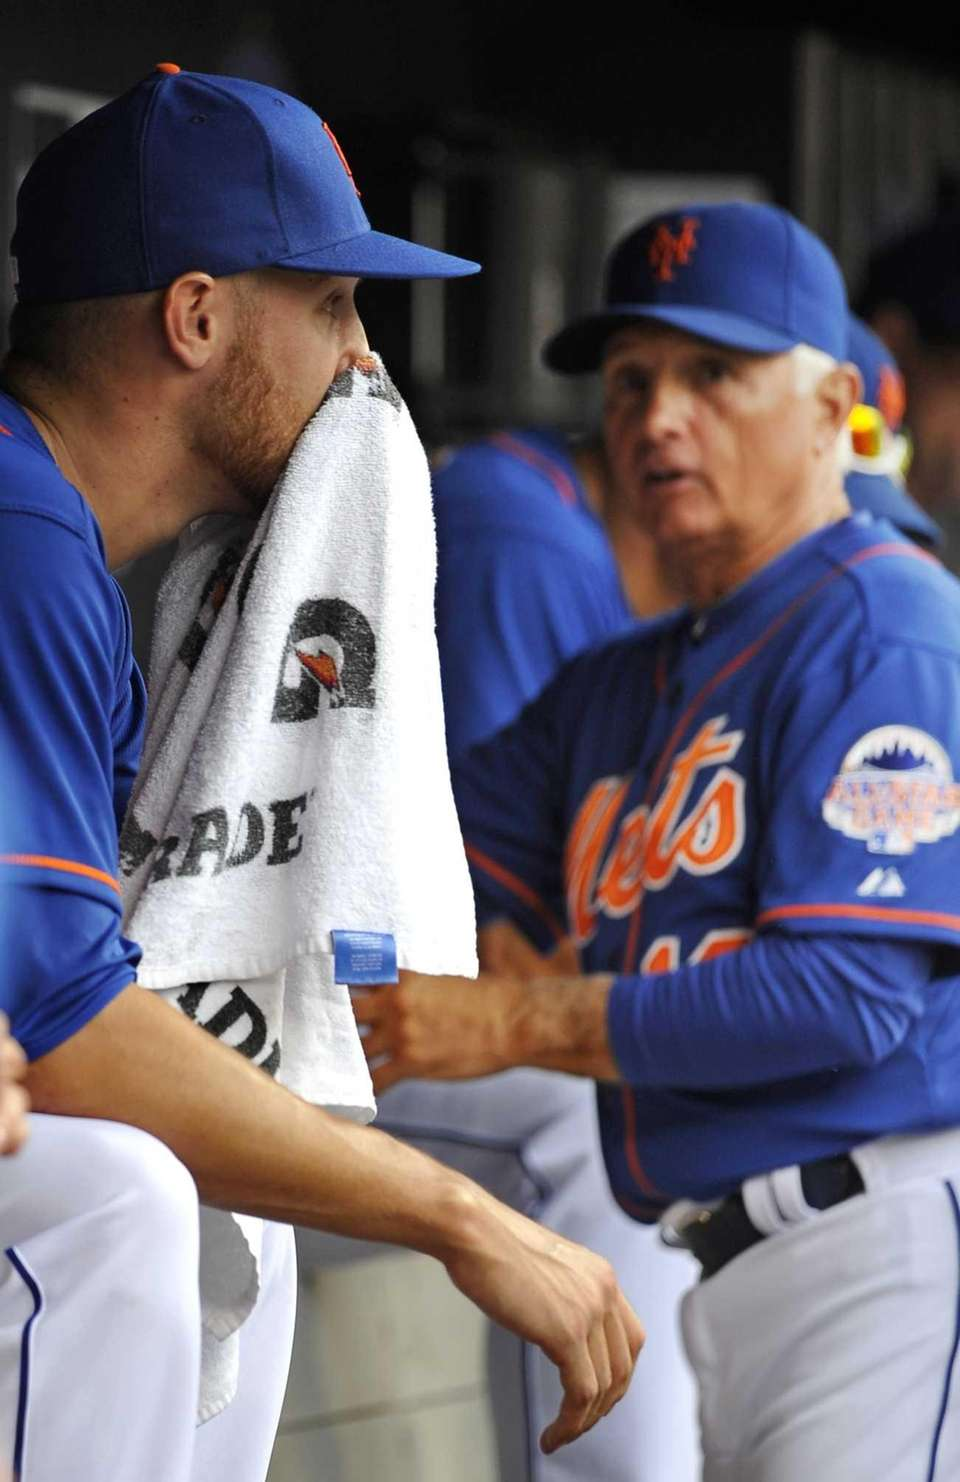 Mets manager Terry Collins, right, looks over at